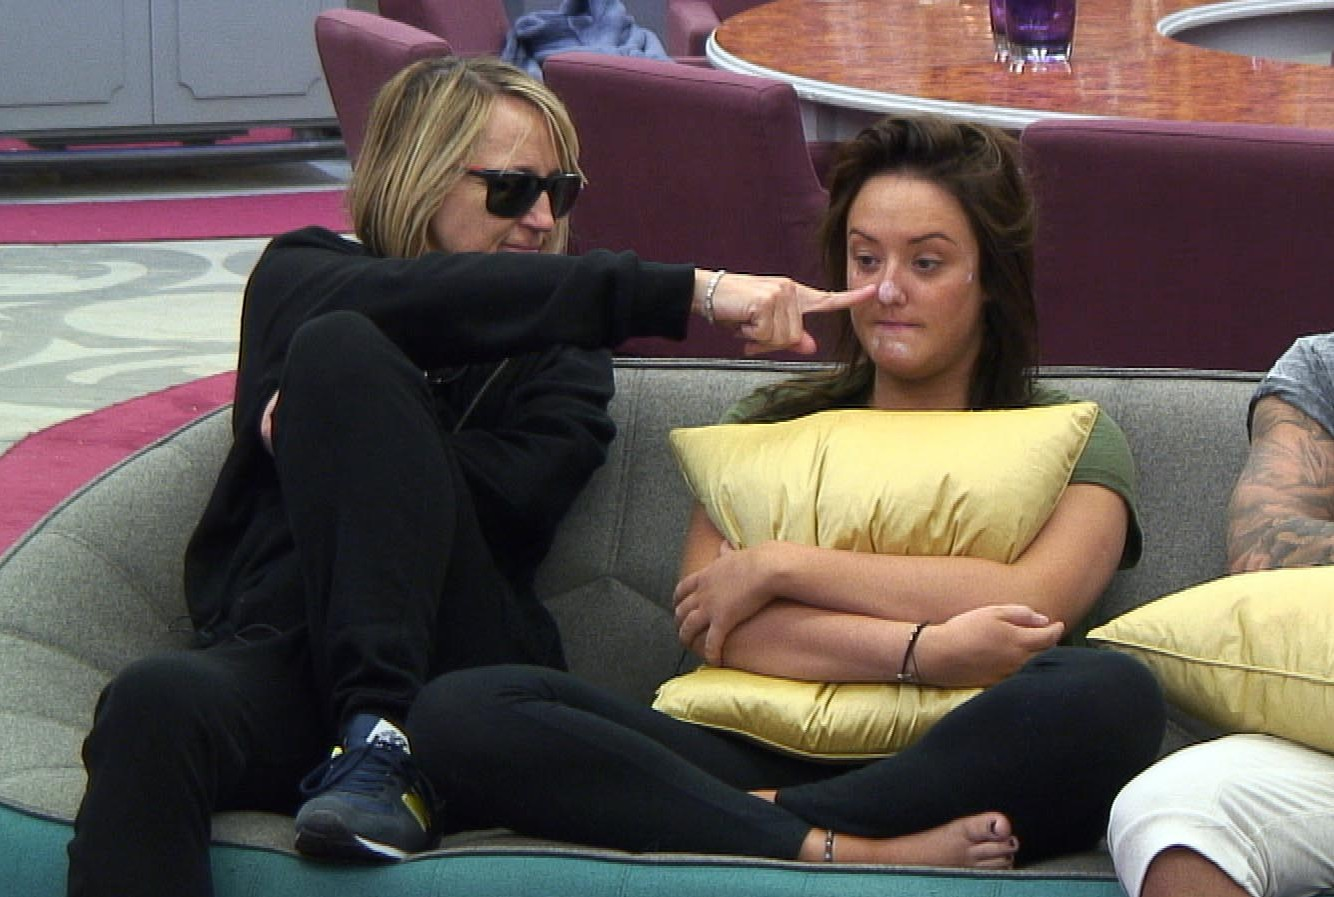 Celebrity Big Brother 2013: Carol McGiffin backing Charlotte Crosby to win over 'boring' Abz Love